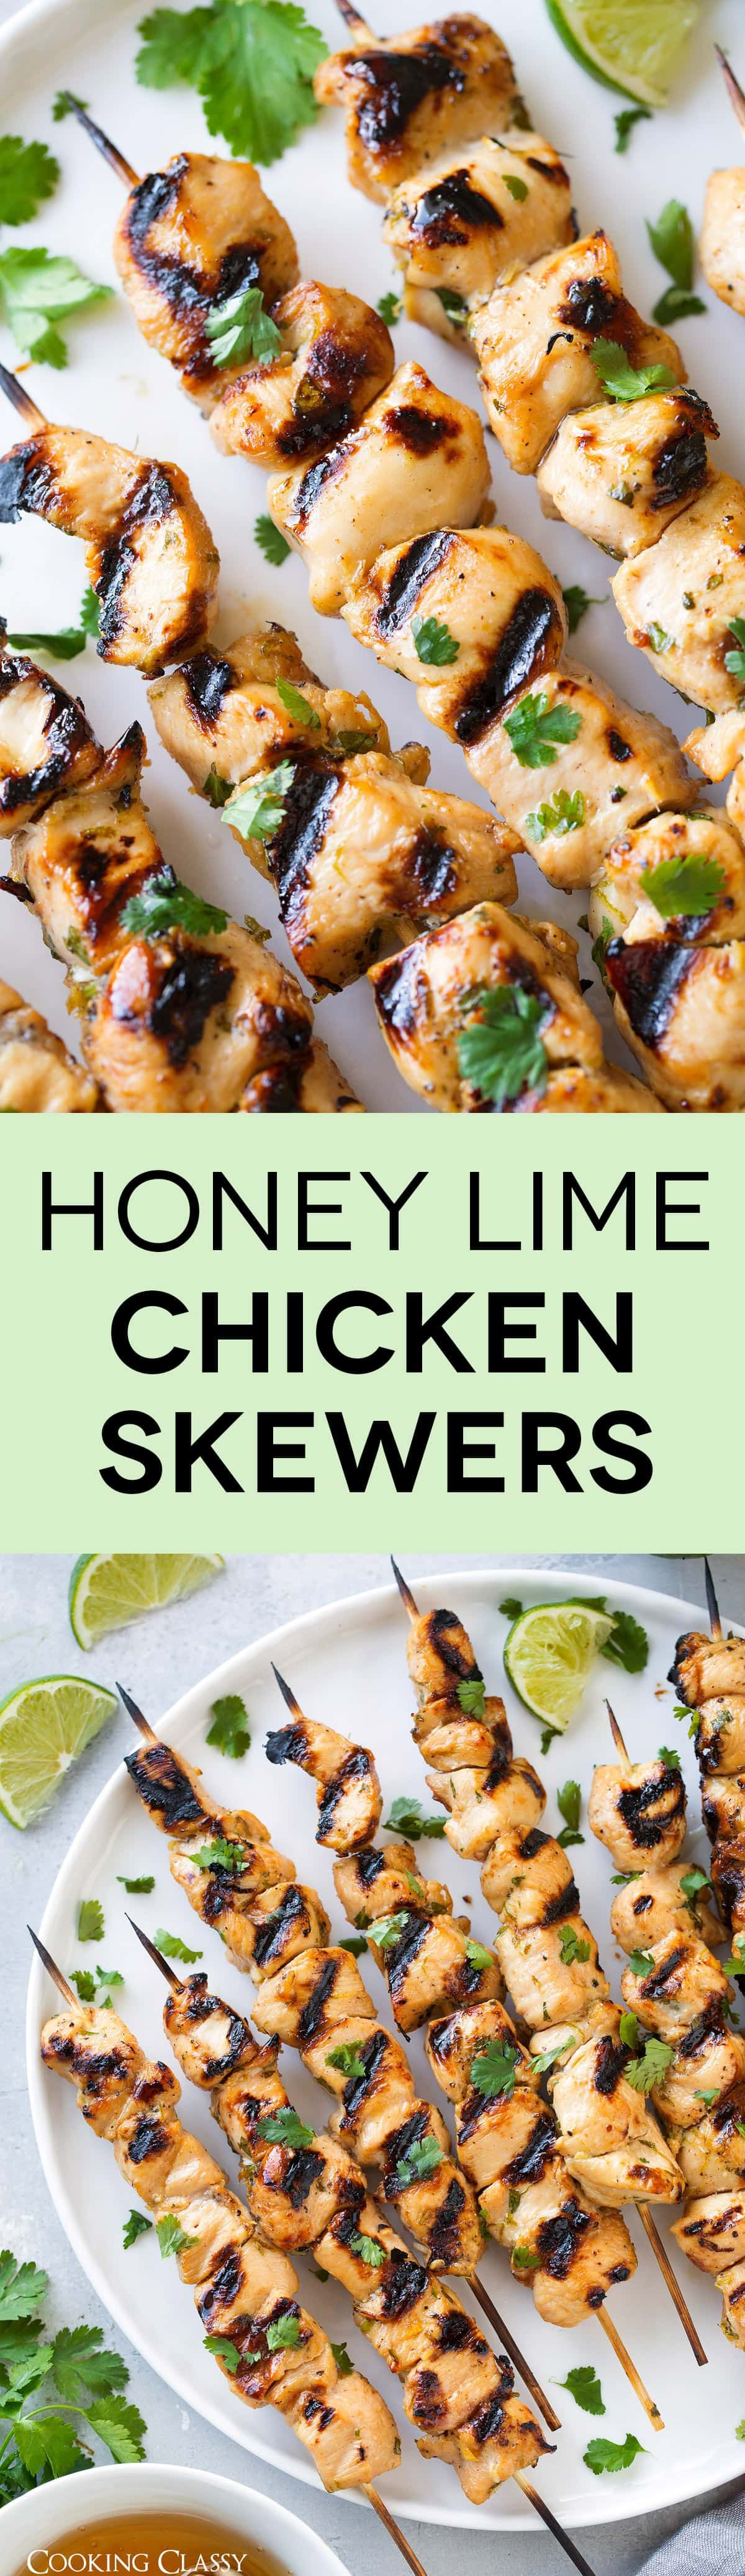 Honey Lime Chicken Skewers - Cooking Classy